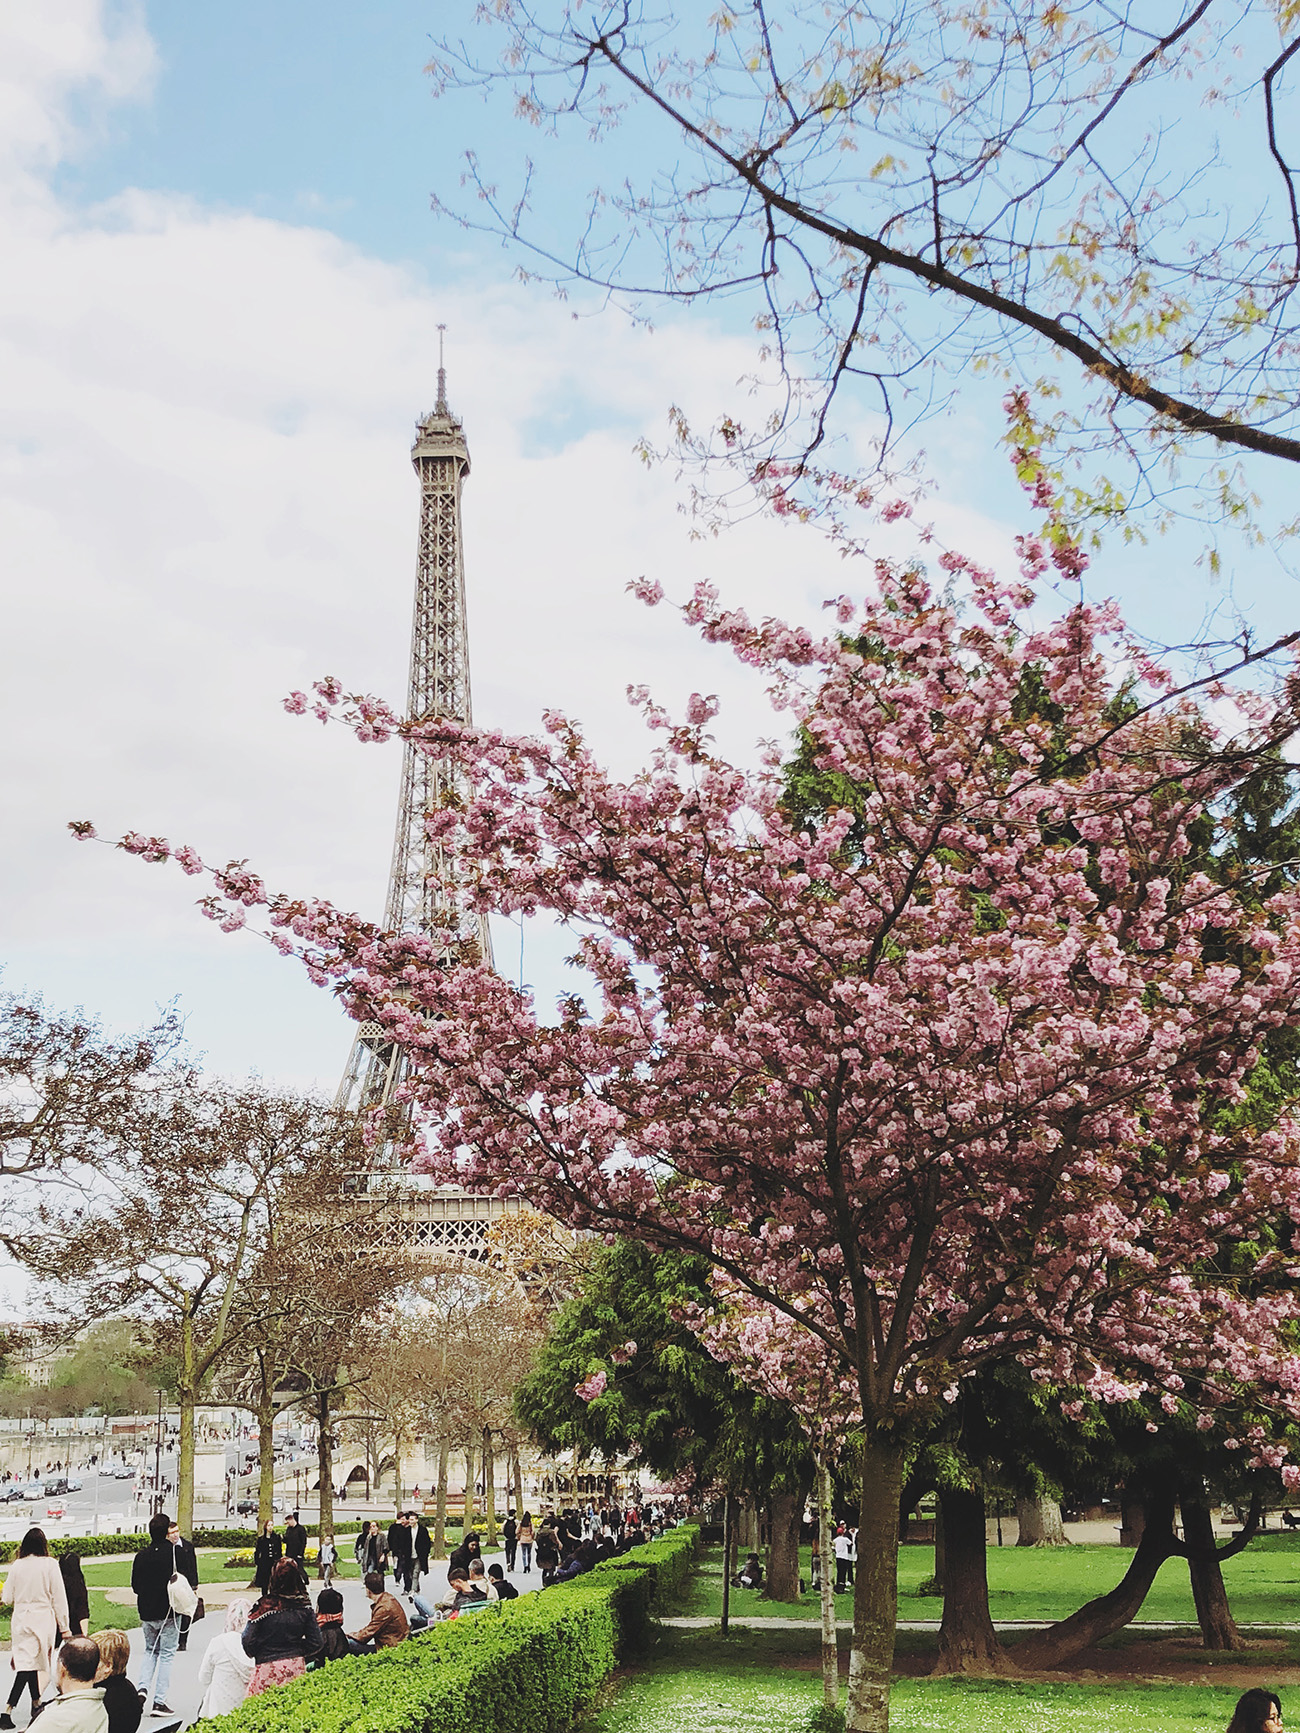 Cherry Blossoms by the Eiffel Tower